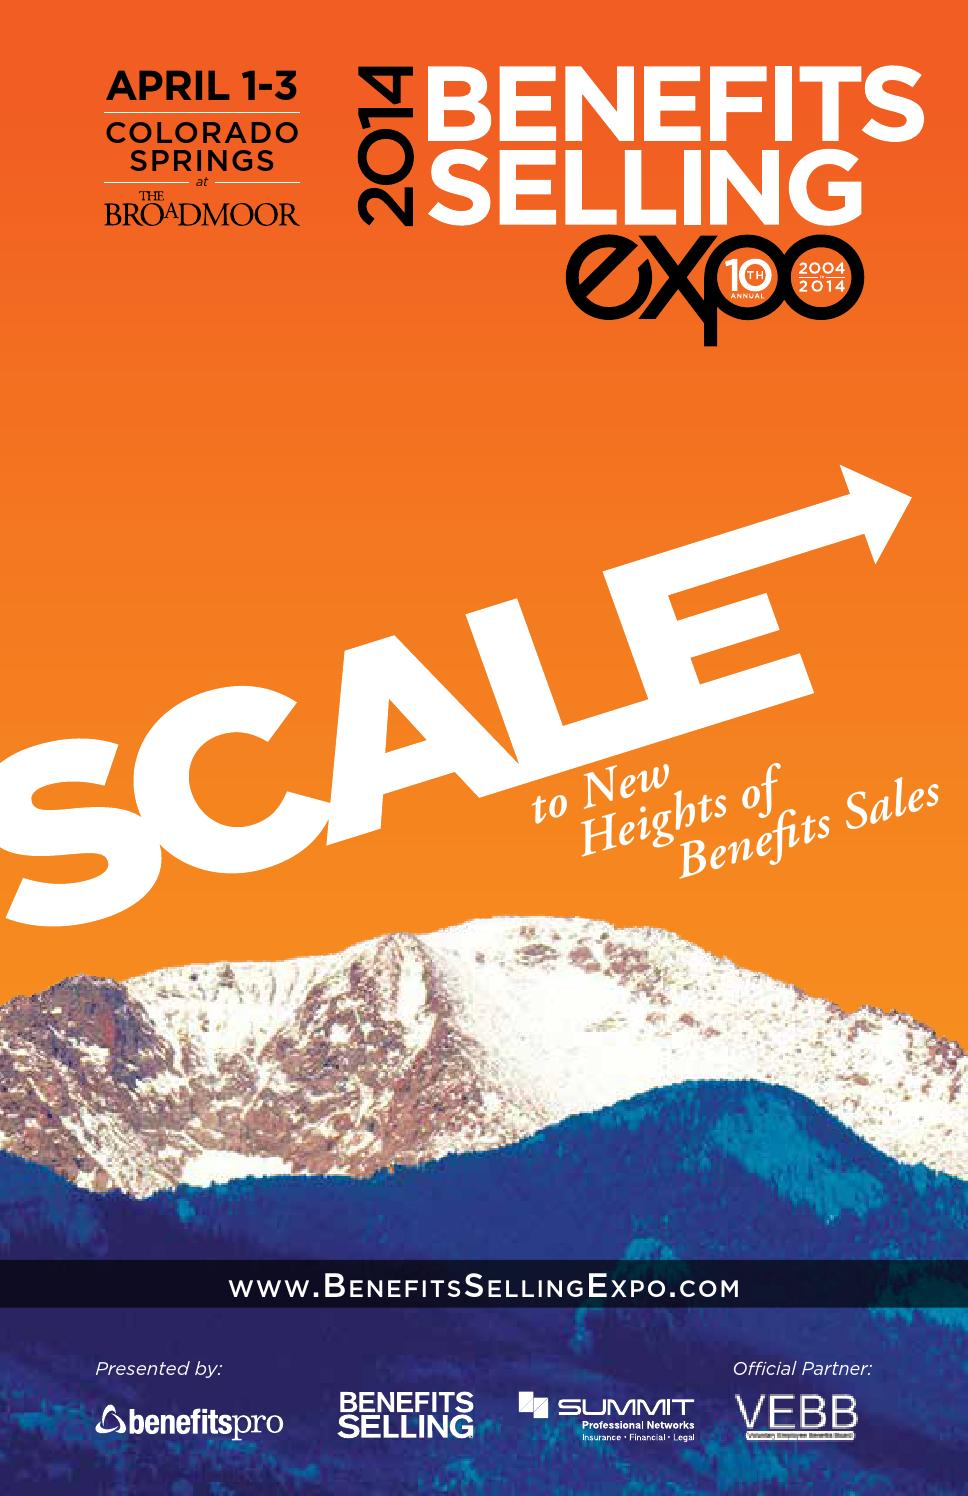 benefits selling expo 2014 by melissaosterweil - issuu